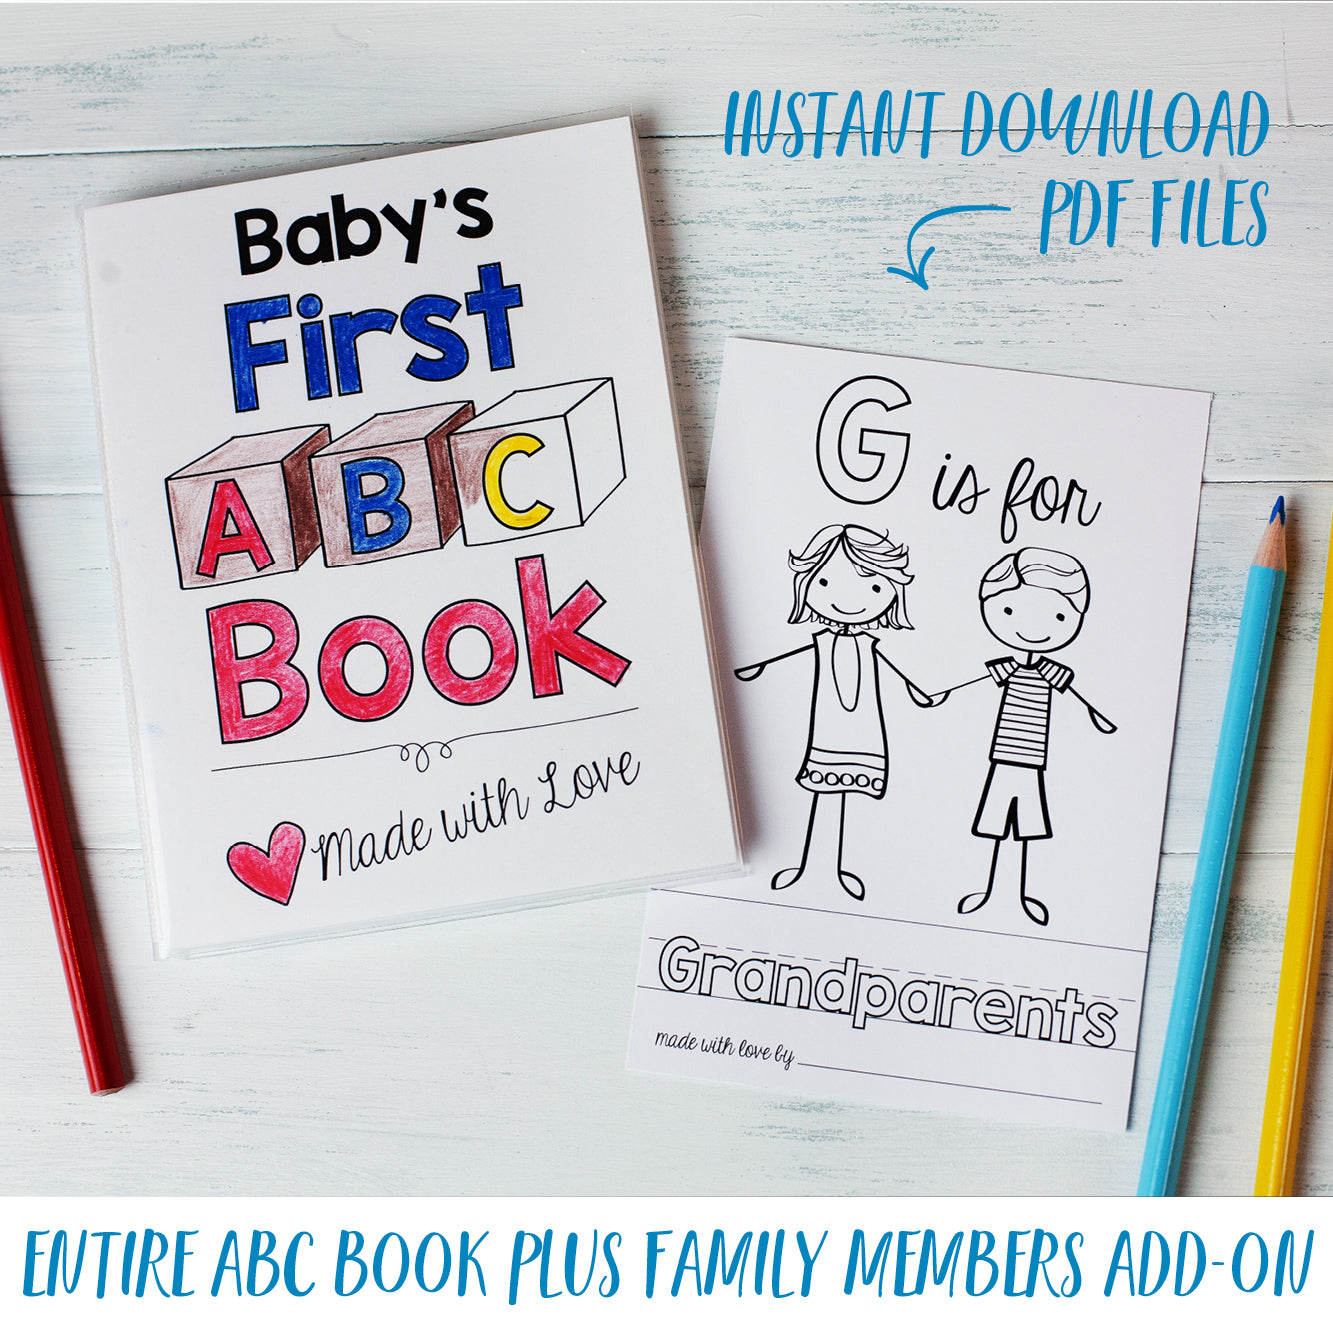 ABC Book Printable PDF Download with Family Pack   20.20x20